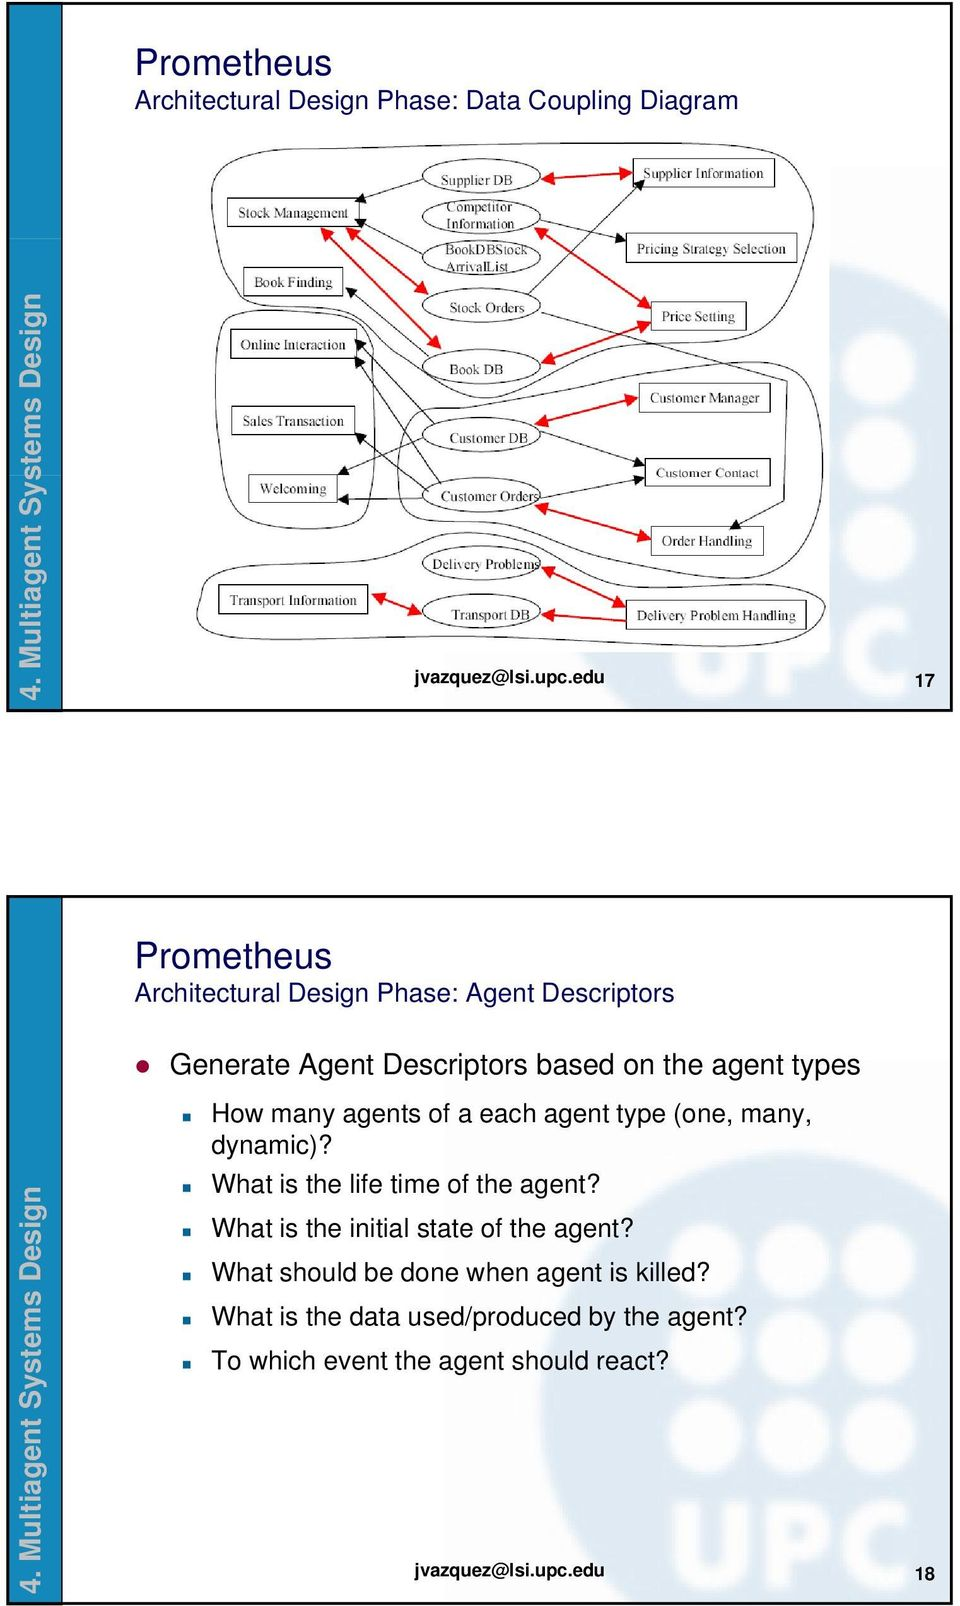 of a each agent type (one, many, dynamic)? What is the life time of the agent? What is the initial state of the agent?